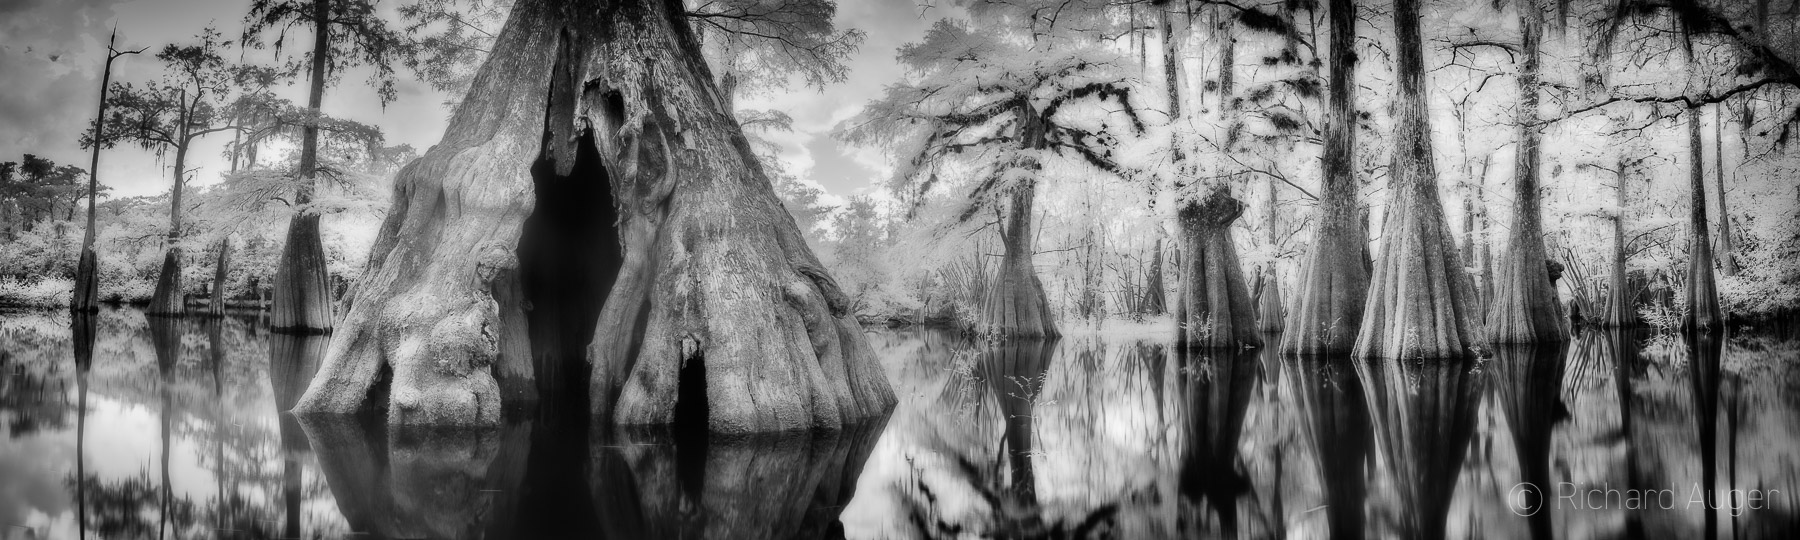 Suwannee River, Florida, Giant Cypress Trees, Water, Swamp, Sepia, Monochrome, Richard Auger, sepia tone, black and white, panorama